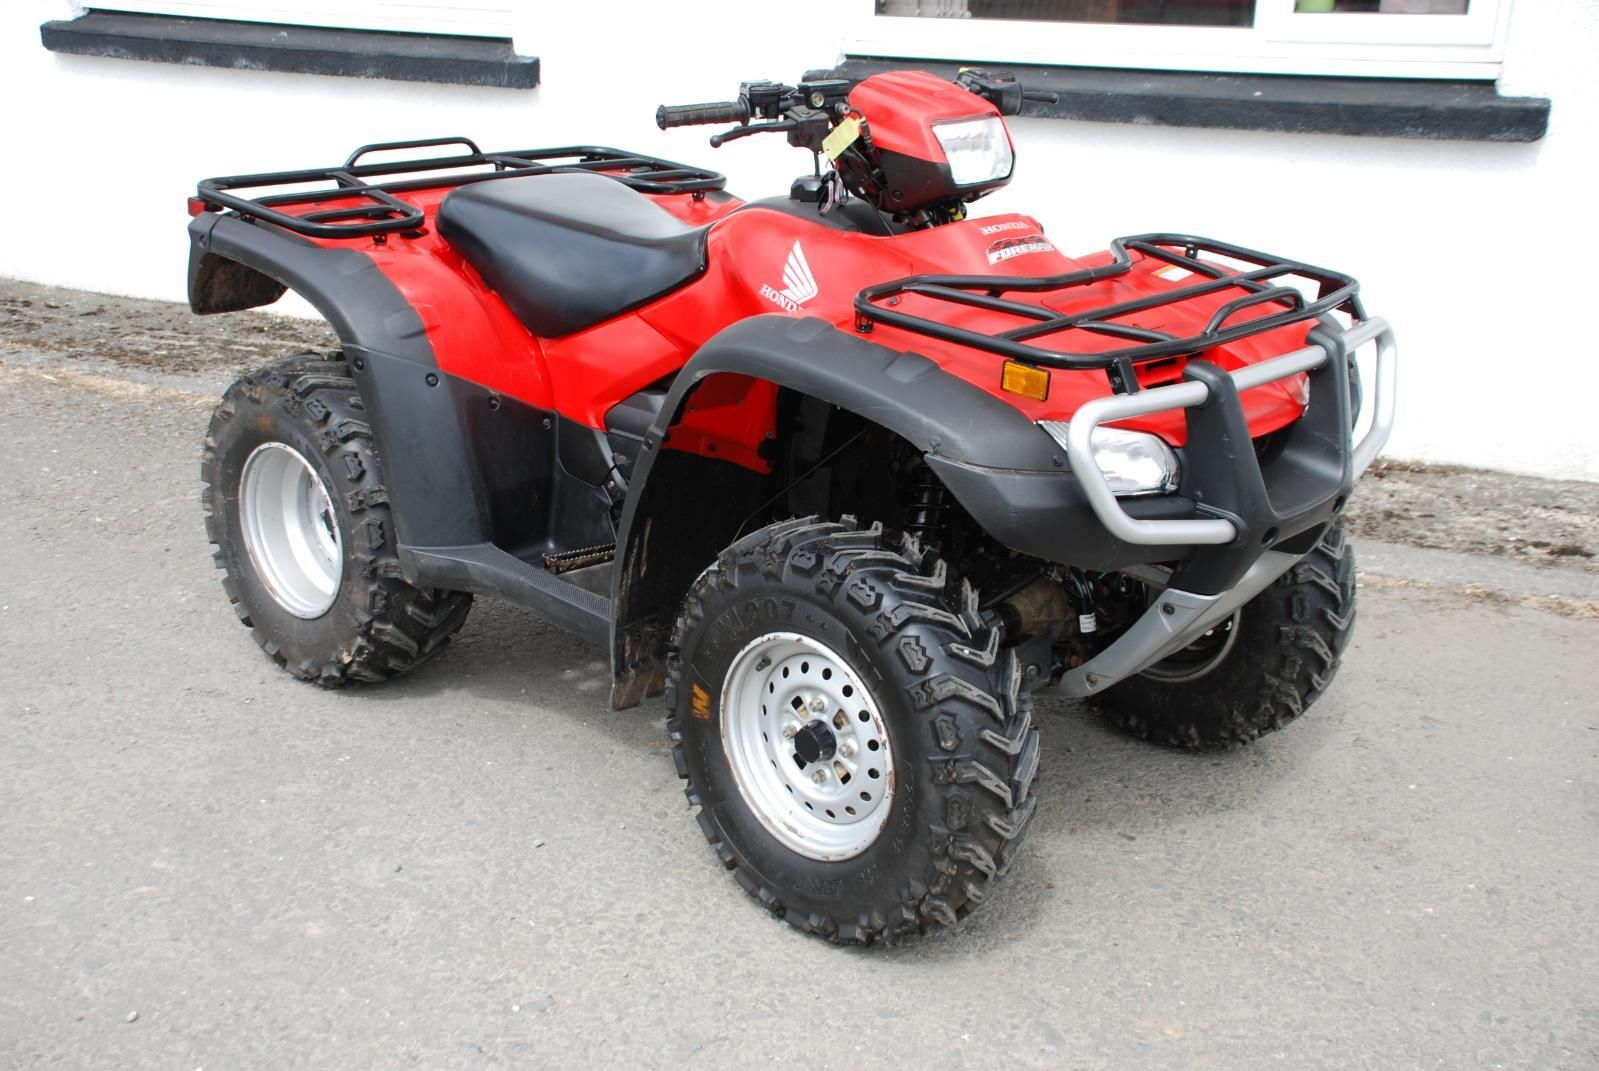 2010 honda trx500fm 2wd 4wd quad atv. Black Bedroom Furniture Sets. Home Design Ideas